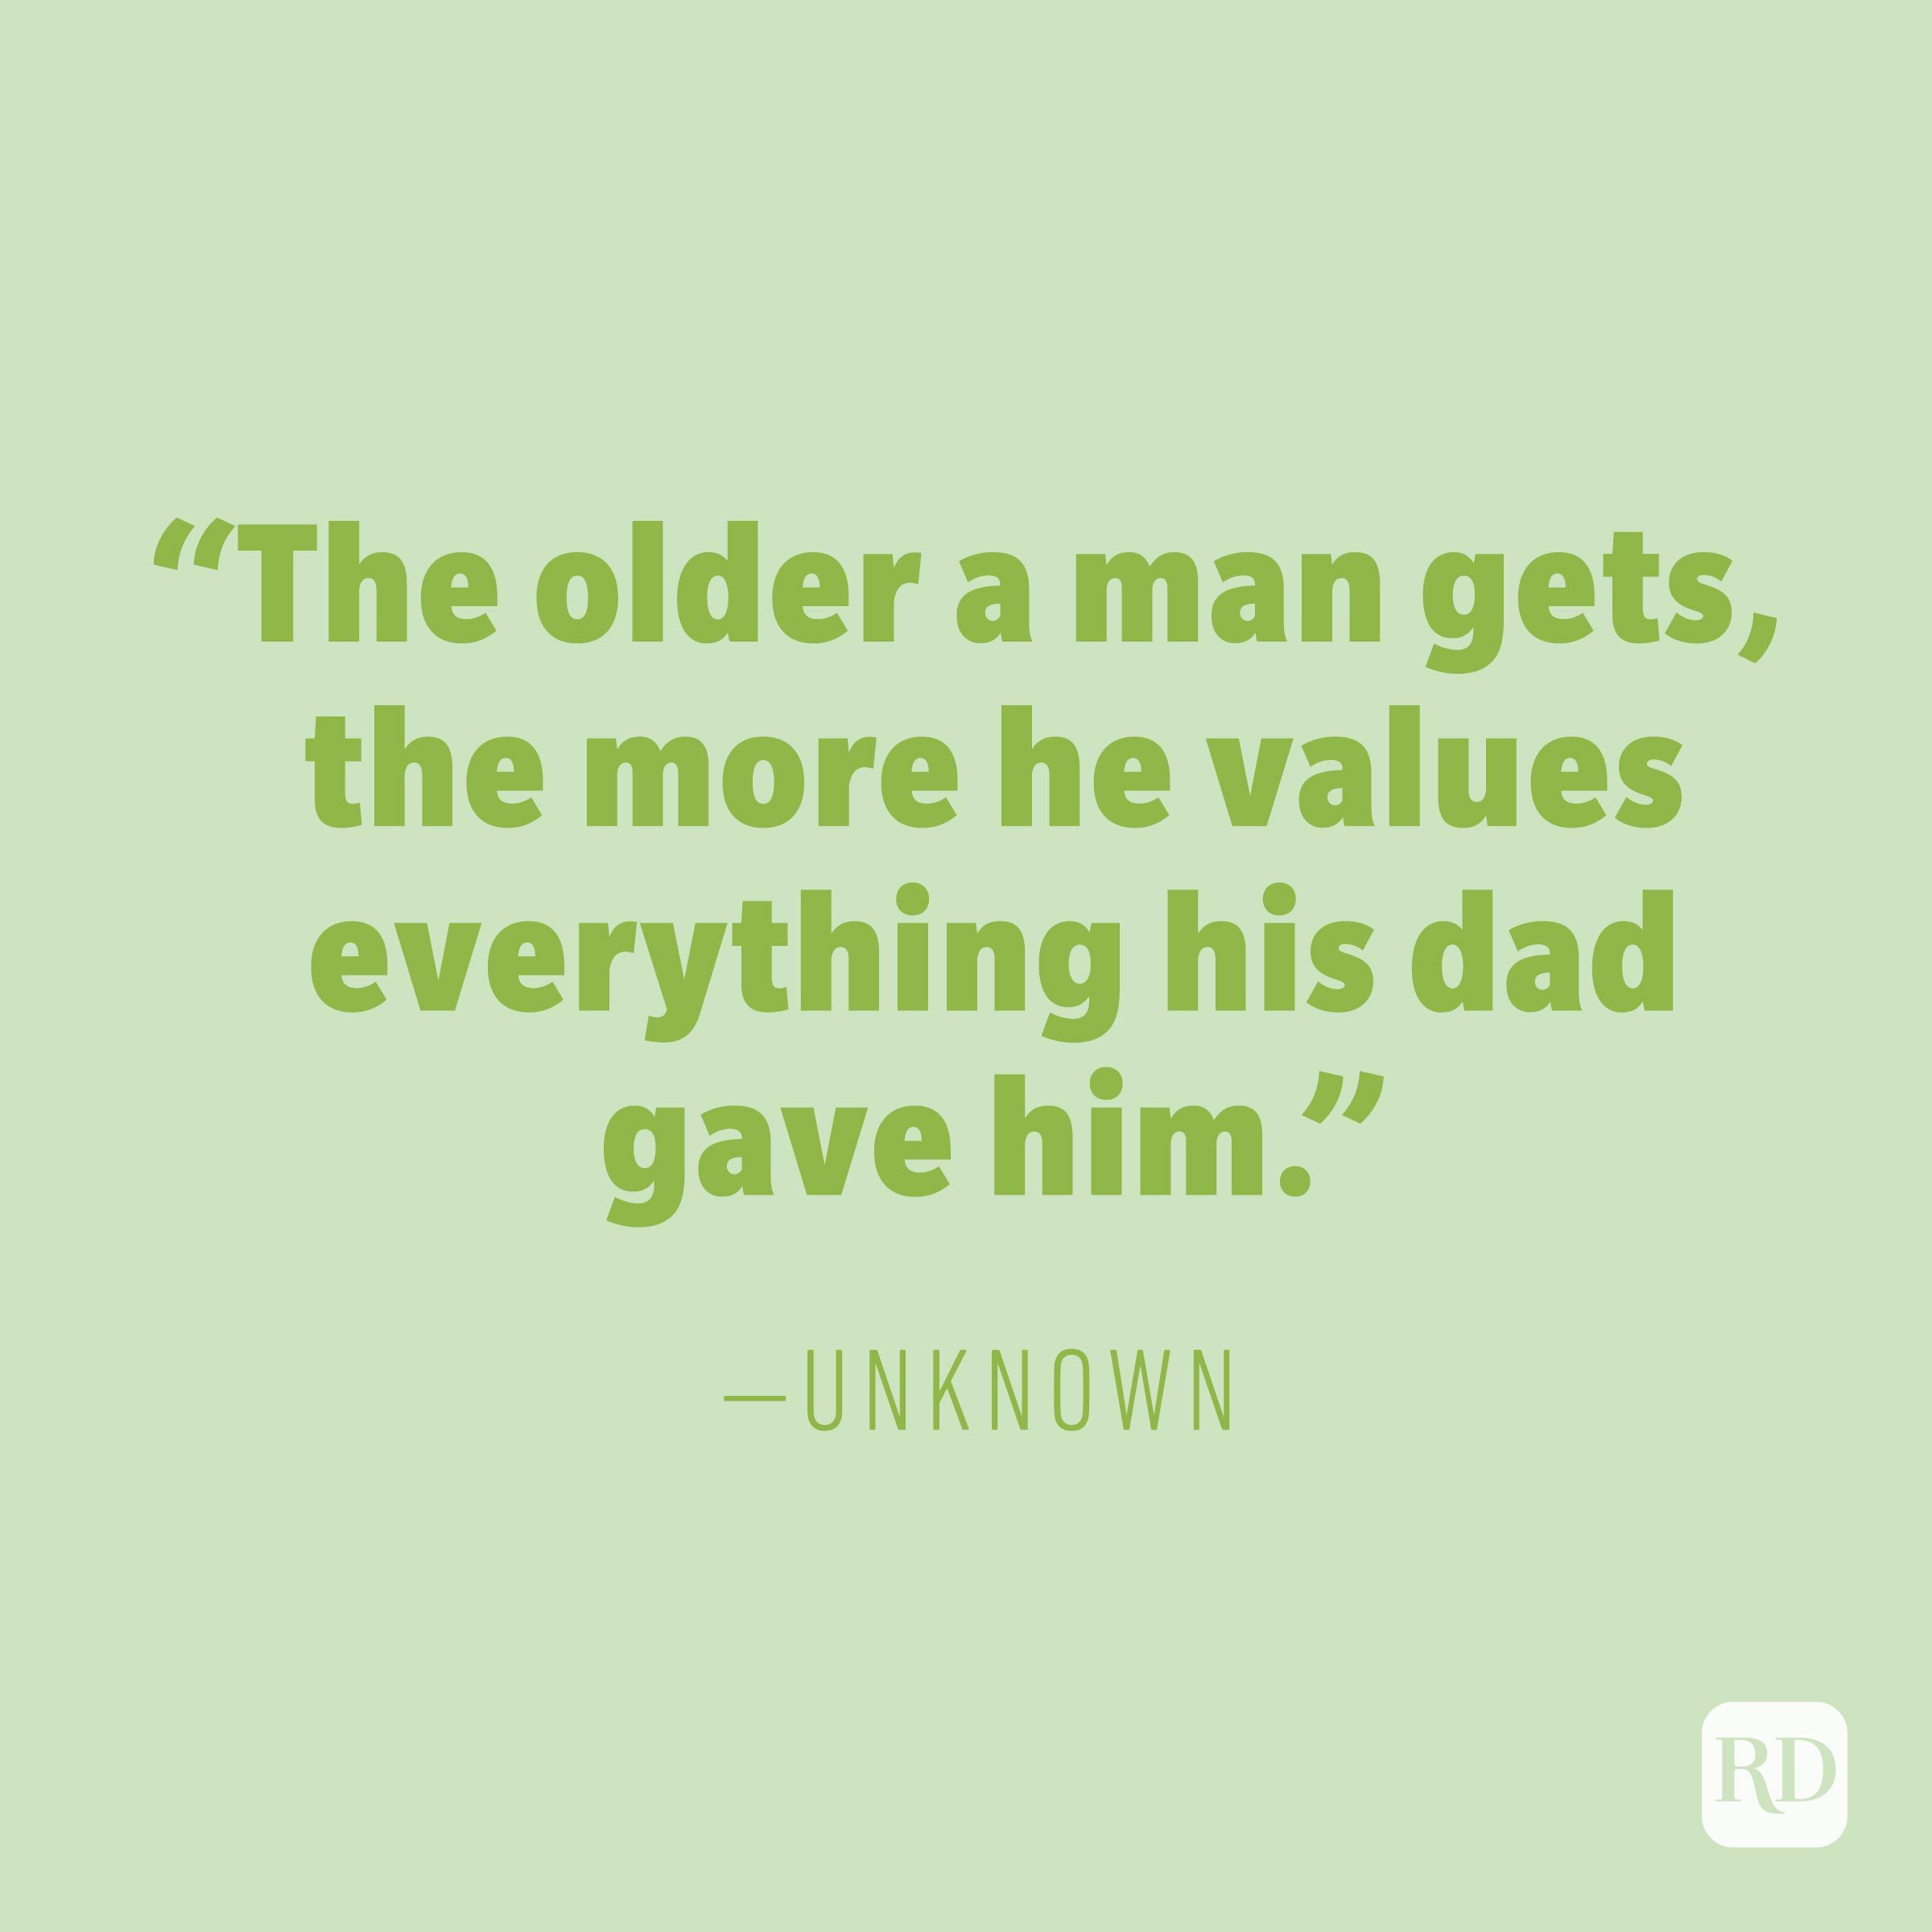 """The older a man gets, the more he values everything his dad gave him."" —UNKNOWN"